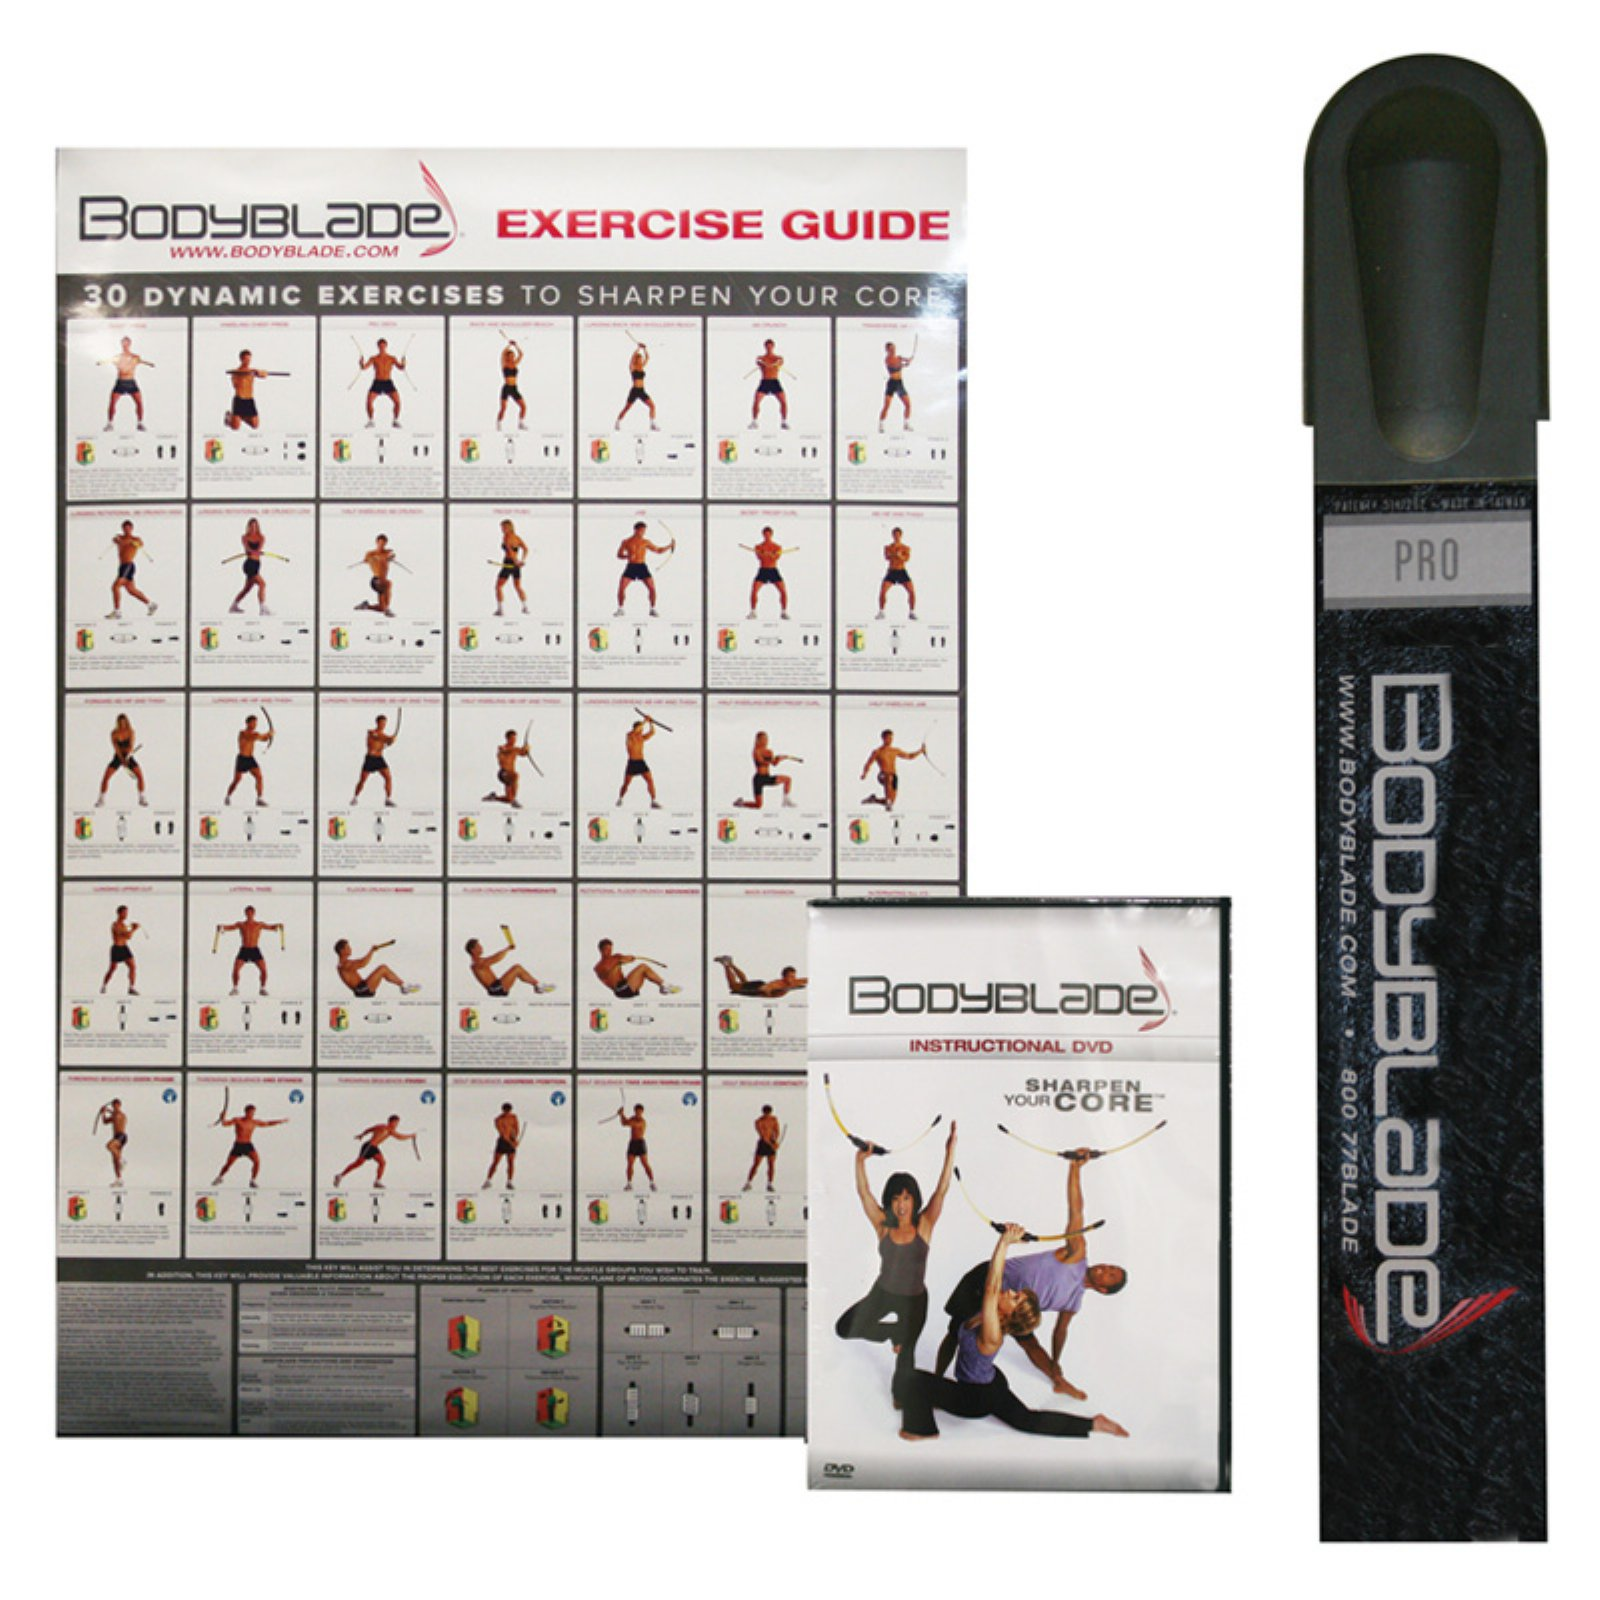 Bodyblade Pro kit with wall chart and instructional video